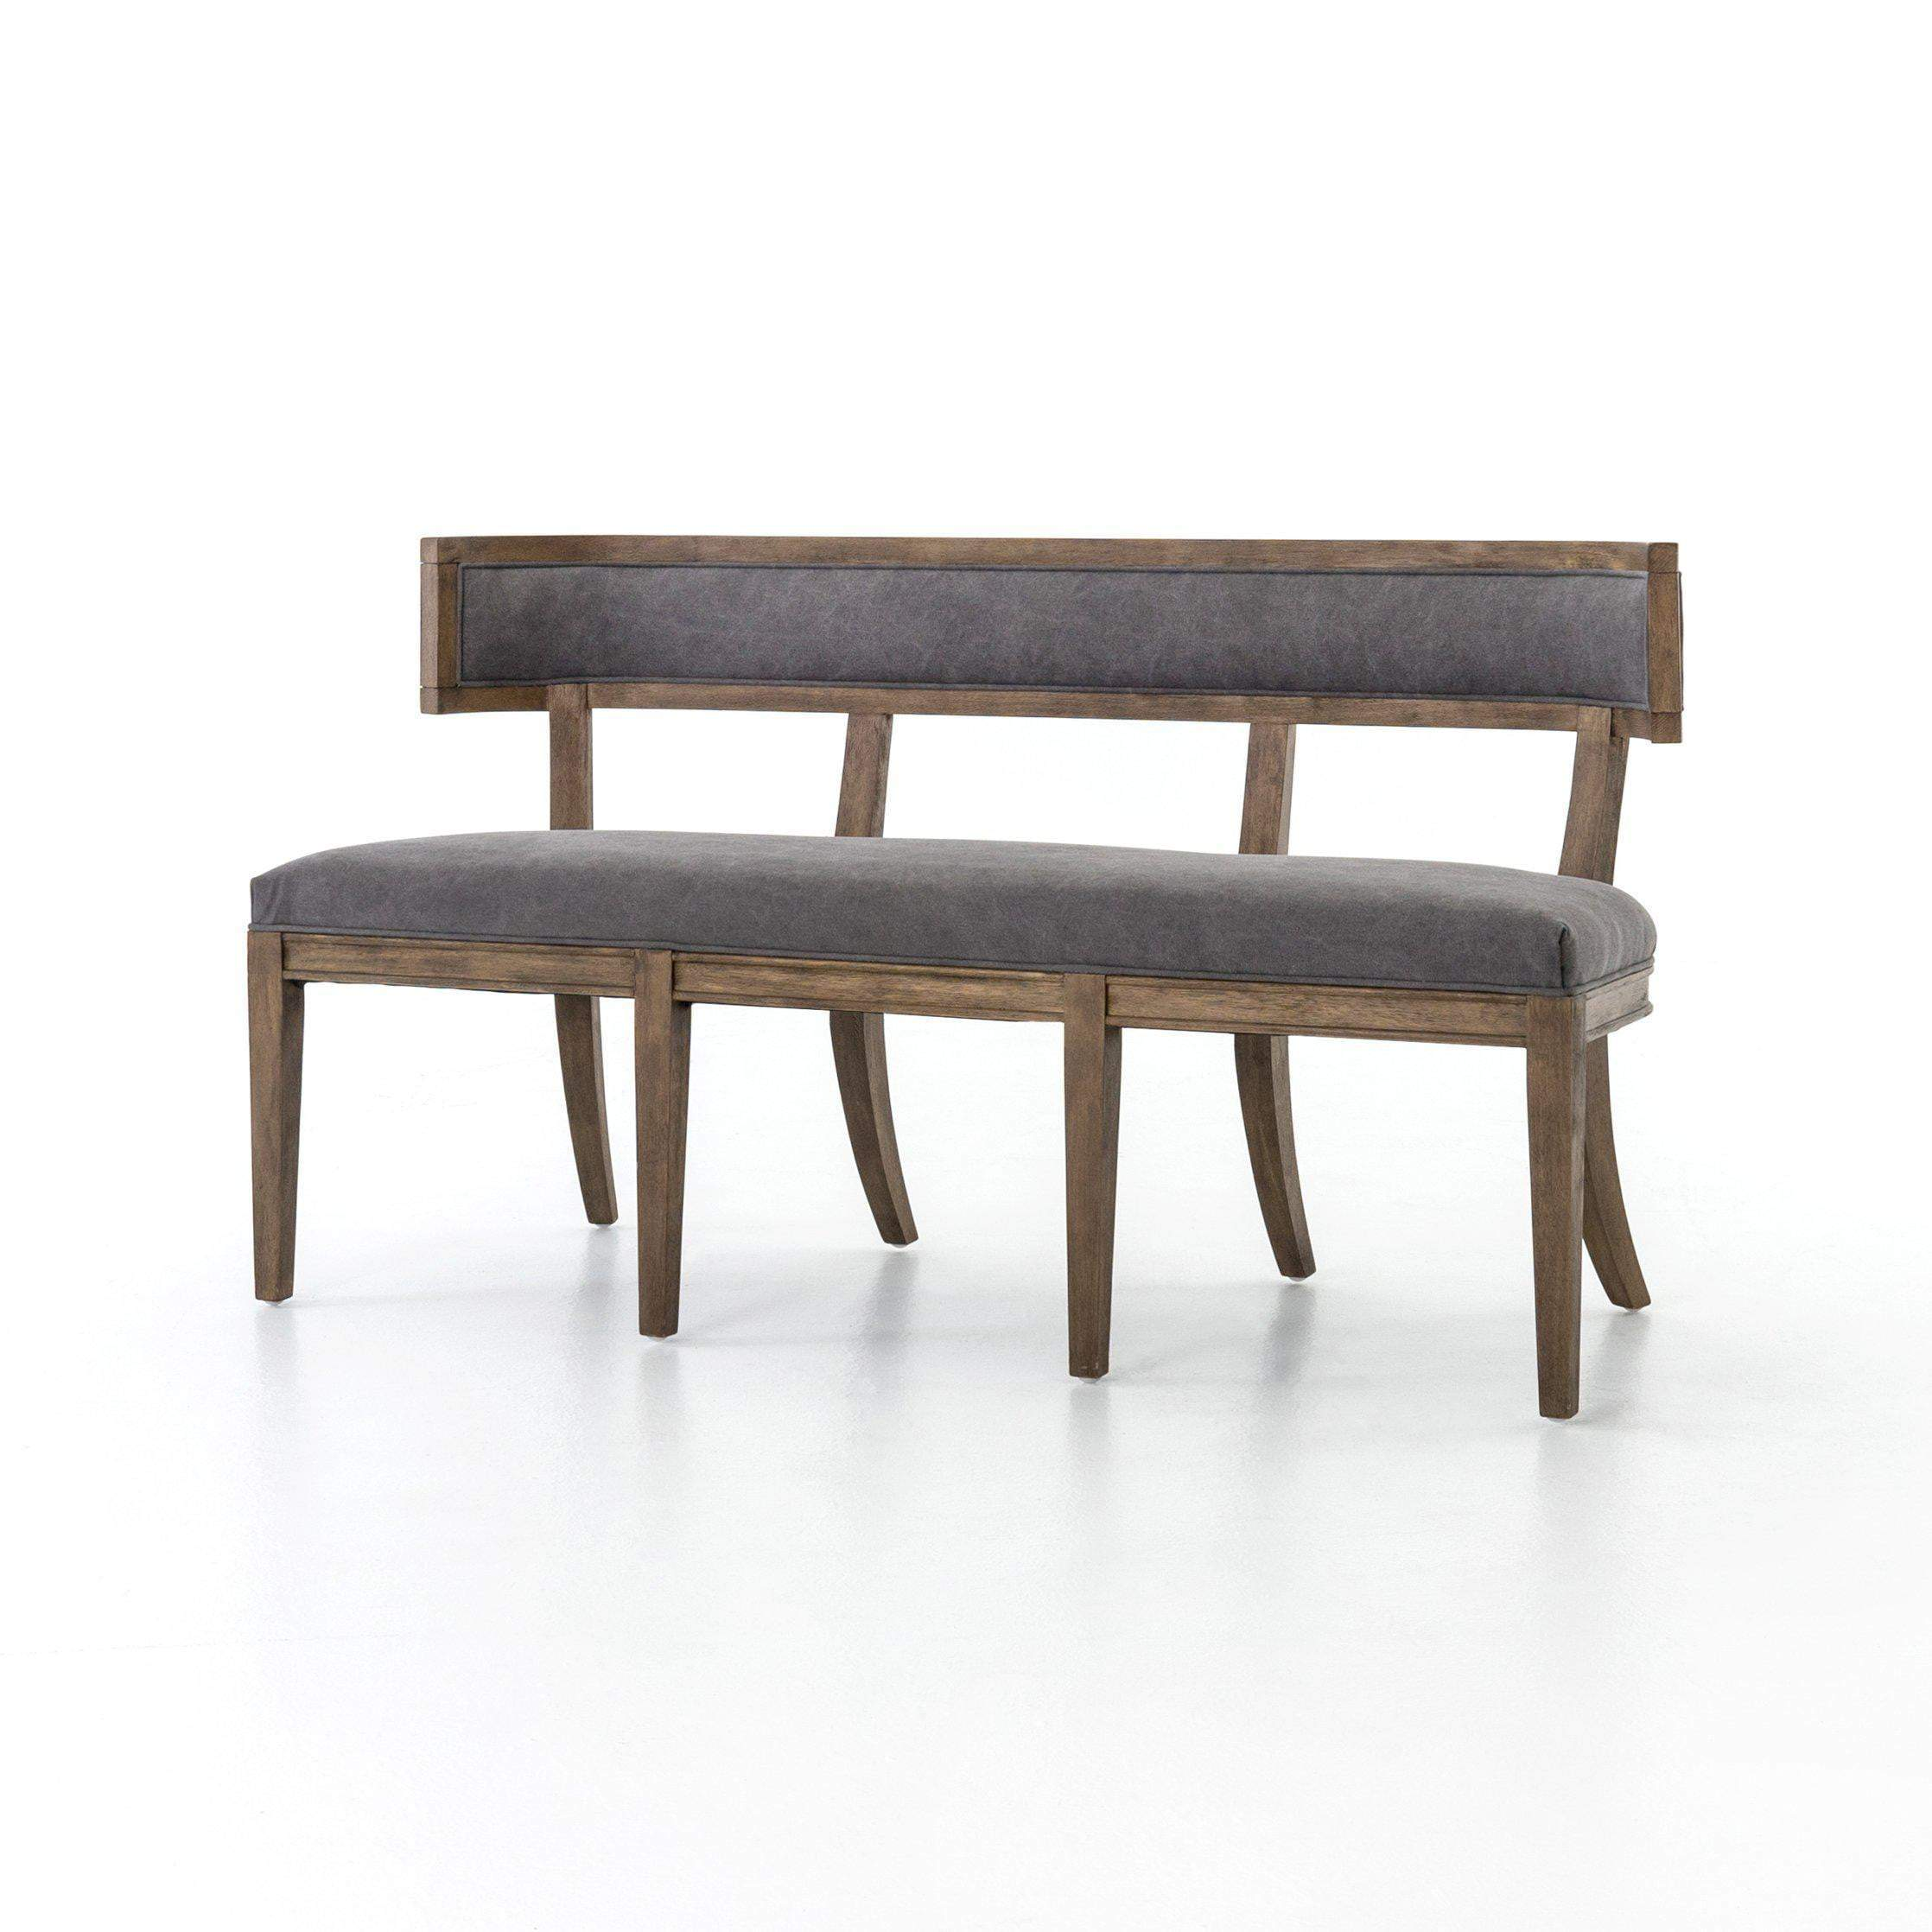 Kensington Collection Carter Dining Bench: Dark Moon Canvas - Parker Gwen